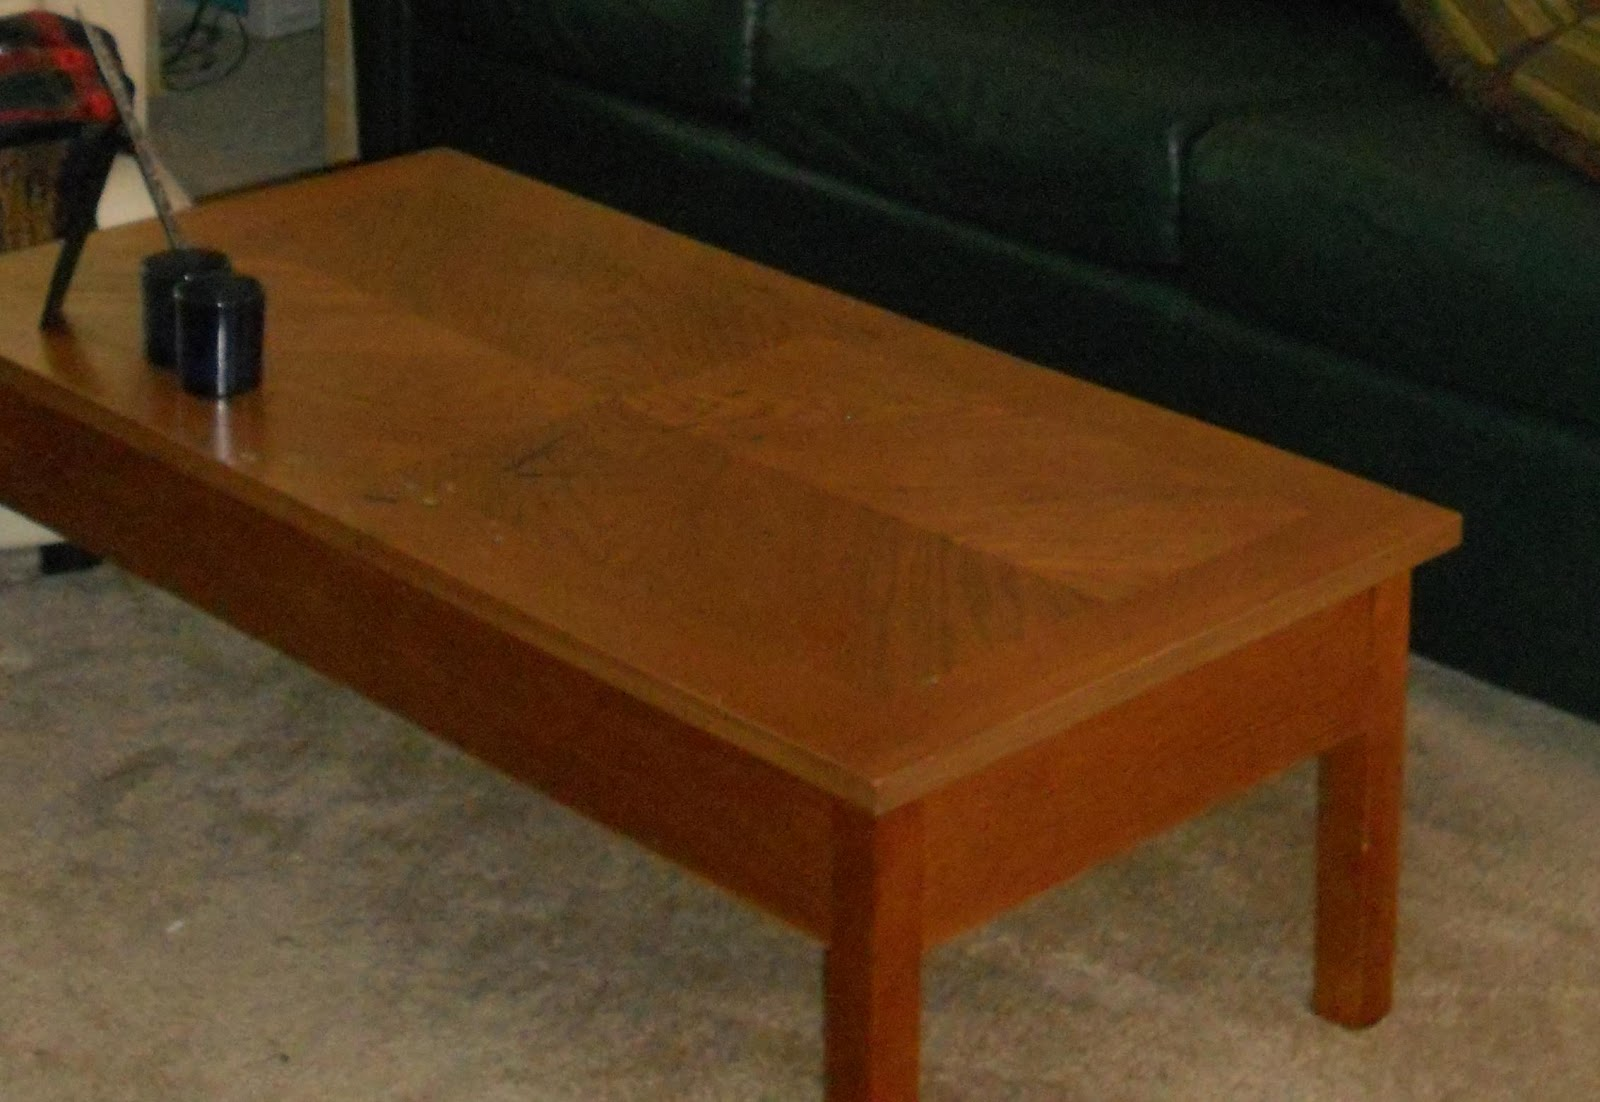 Blog woods download diy coffee table plans Homemade coffee table plans